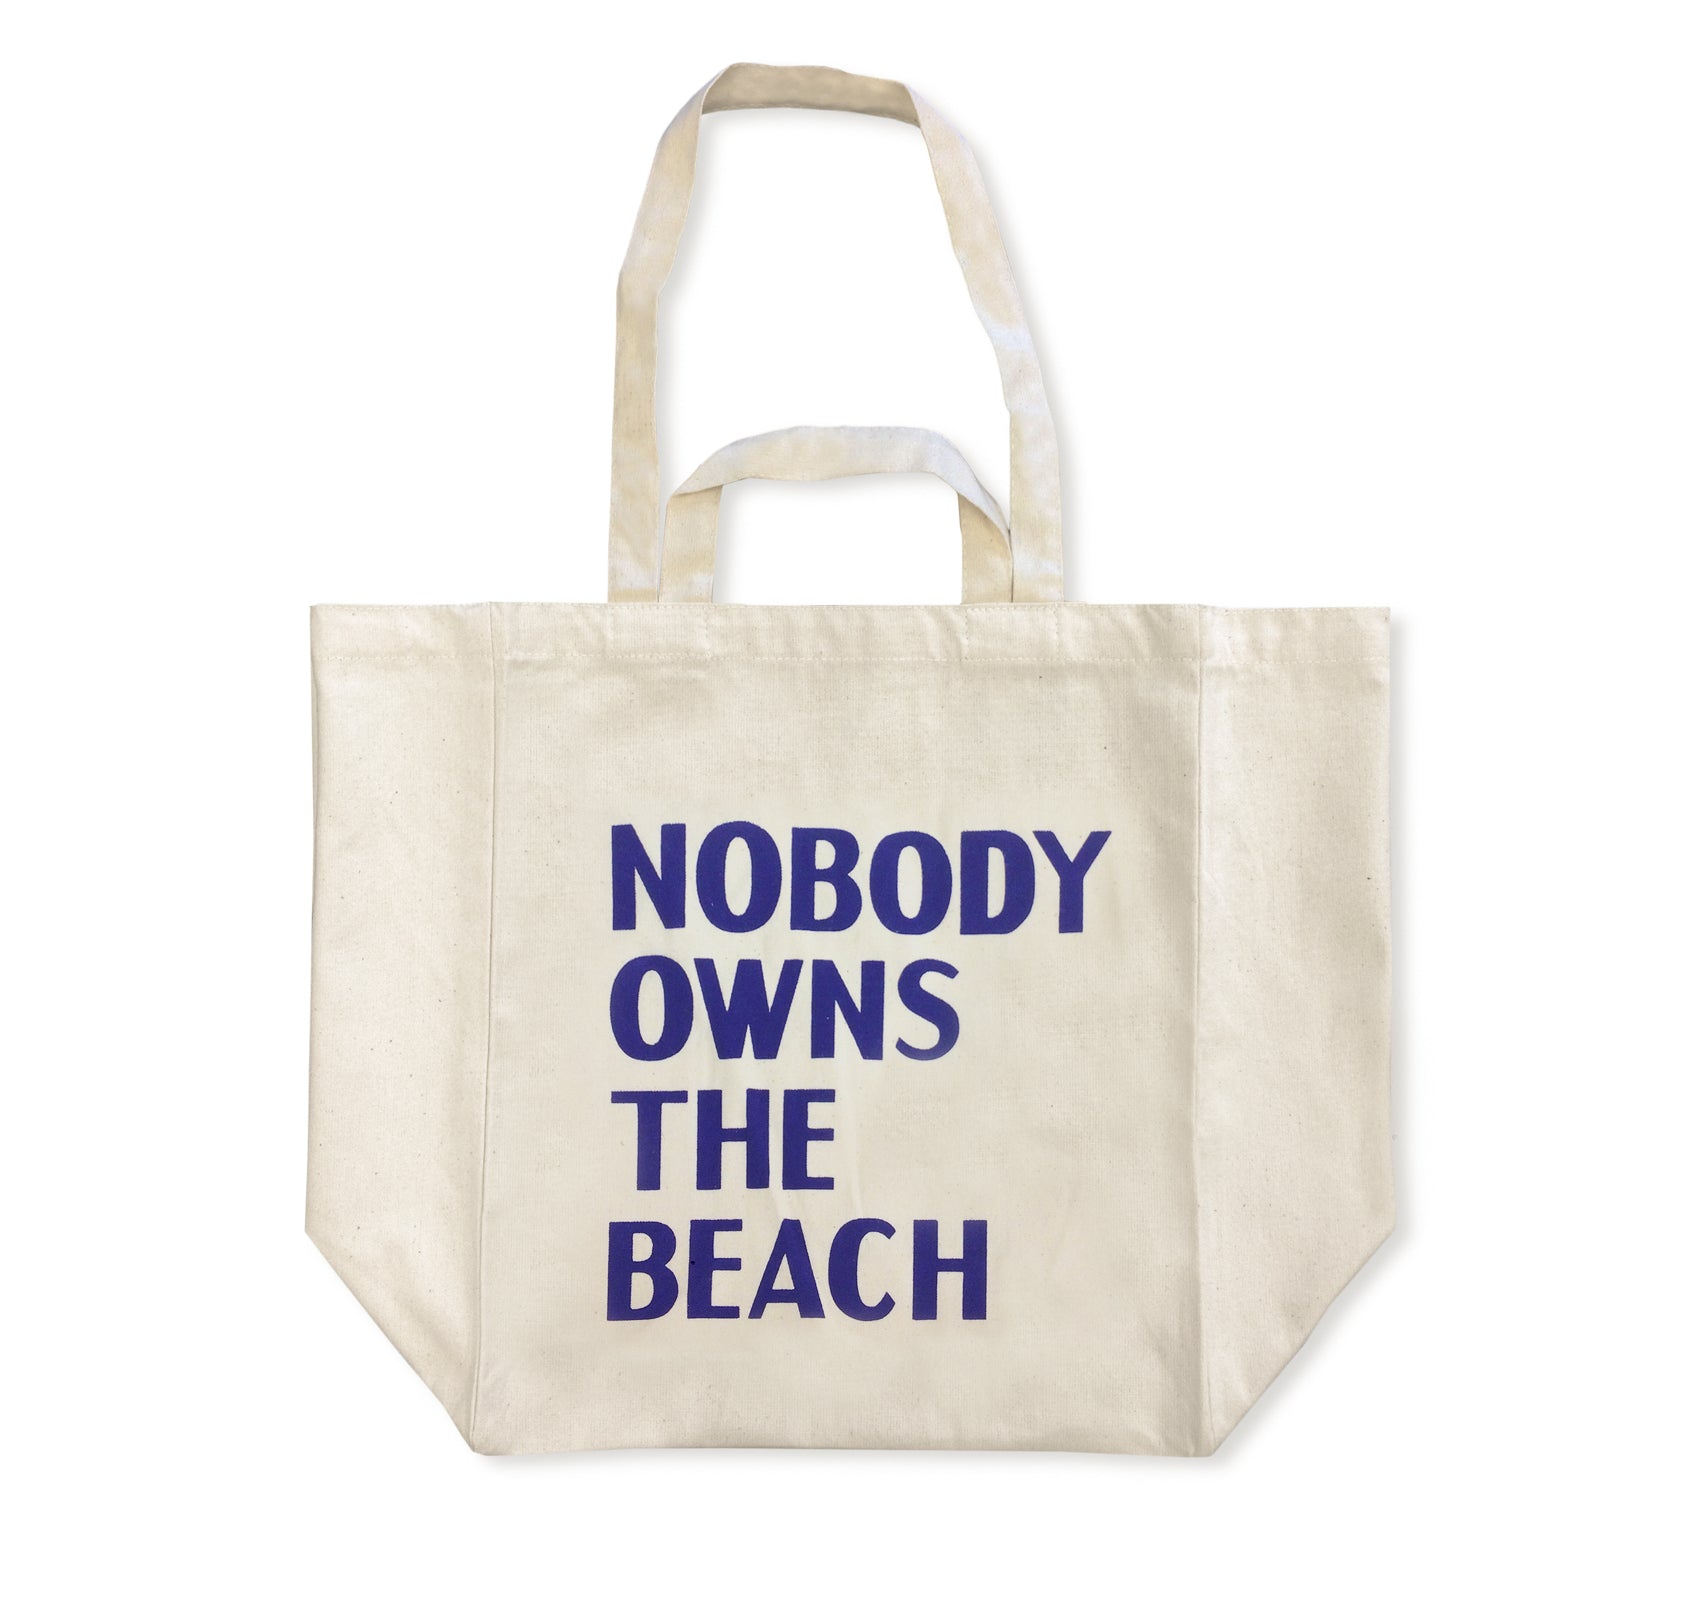 NOBODY OWNS THE BEACH TOTE BAG by David Horvitz